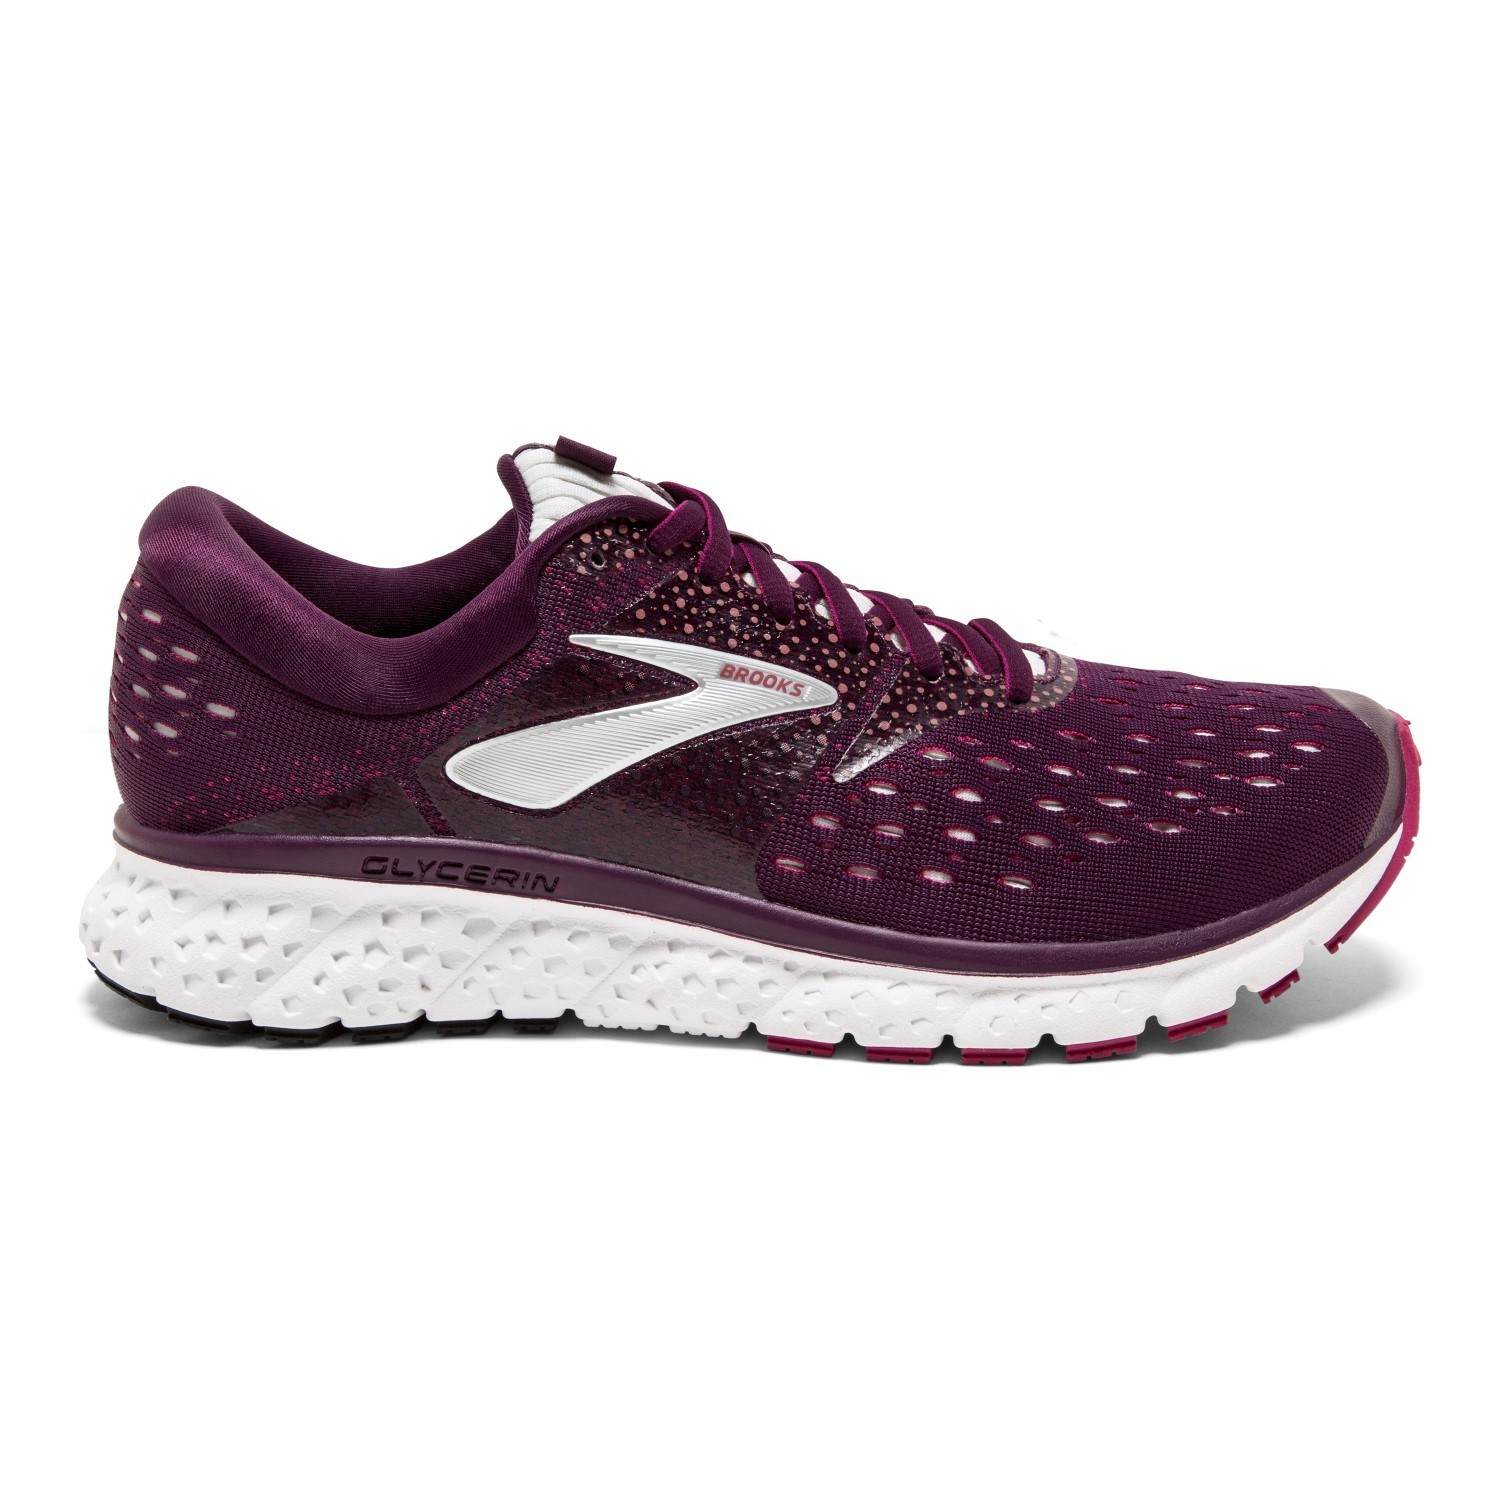 4c97b36251a Brooks Glycerin 16 - Womens Running Shoes - Purple Pink Grey ...